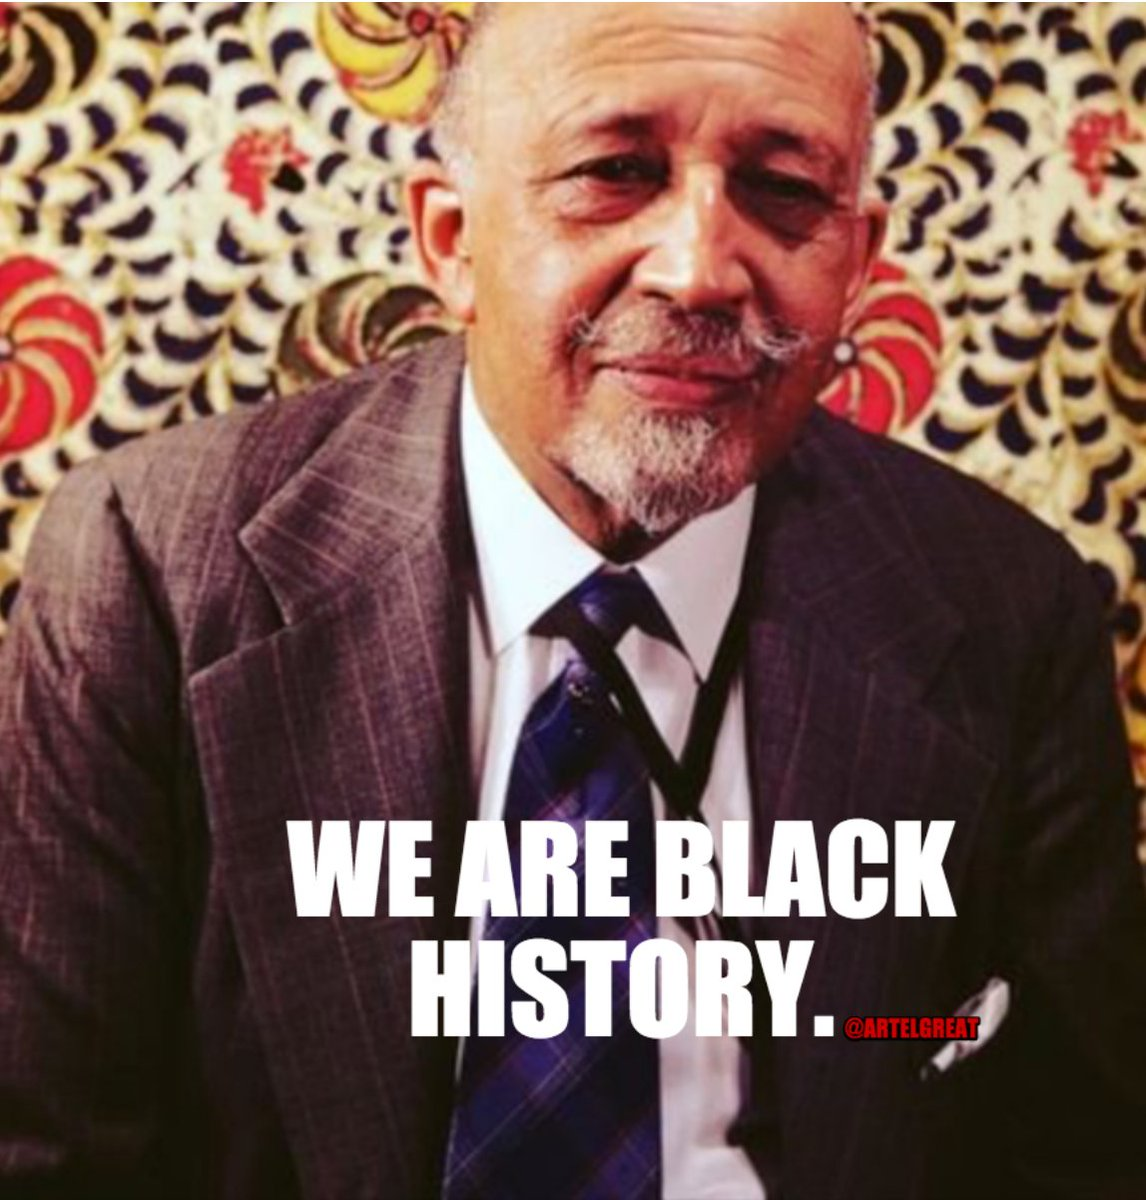 Dr. WEB DuBois. #Intellectual #FreedomFighter #Writer #Leadership  #education #hero #Art #BlackHistory #BlackLivesMatter  #BlackExcellence<br>http://pic.twitter.com/uNmSY9bBvu